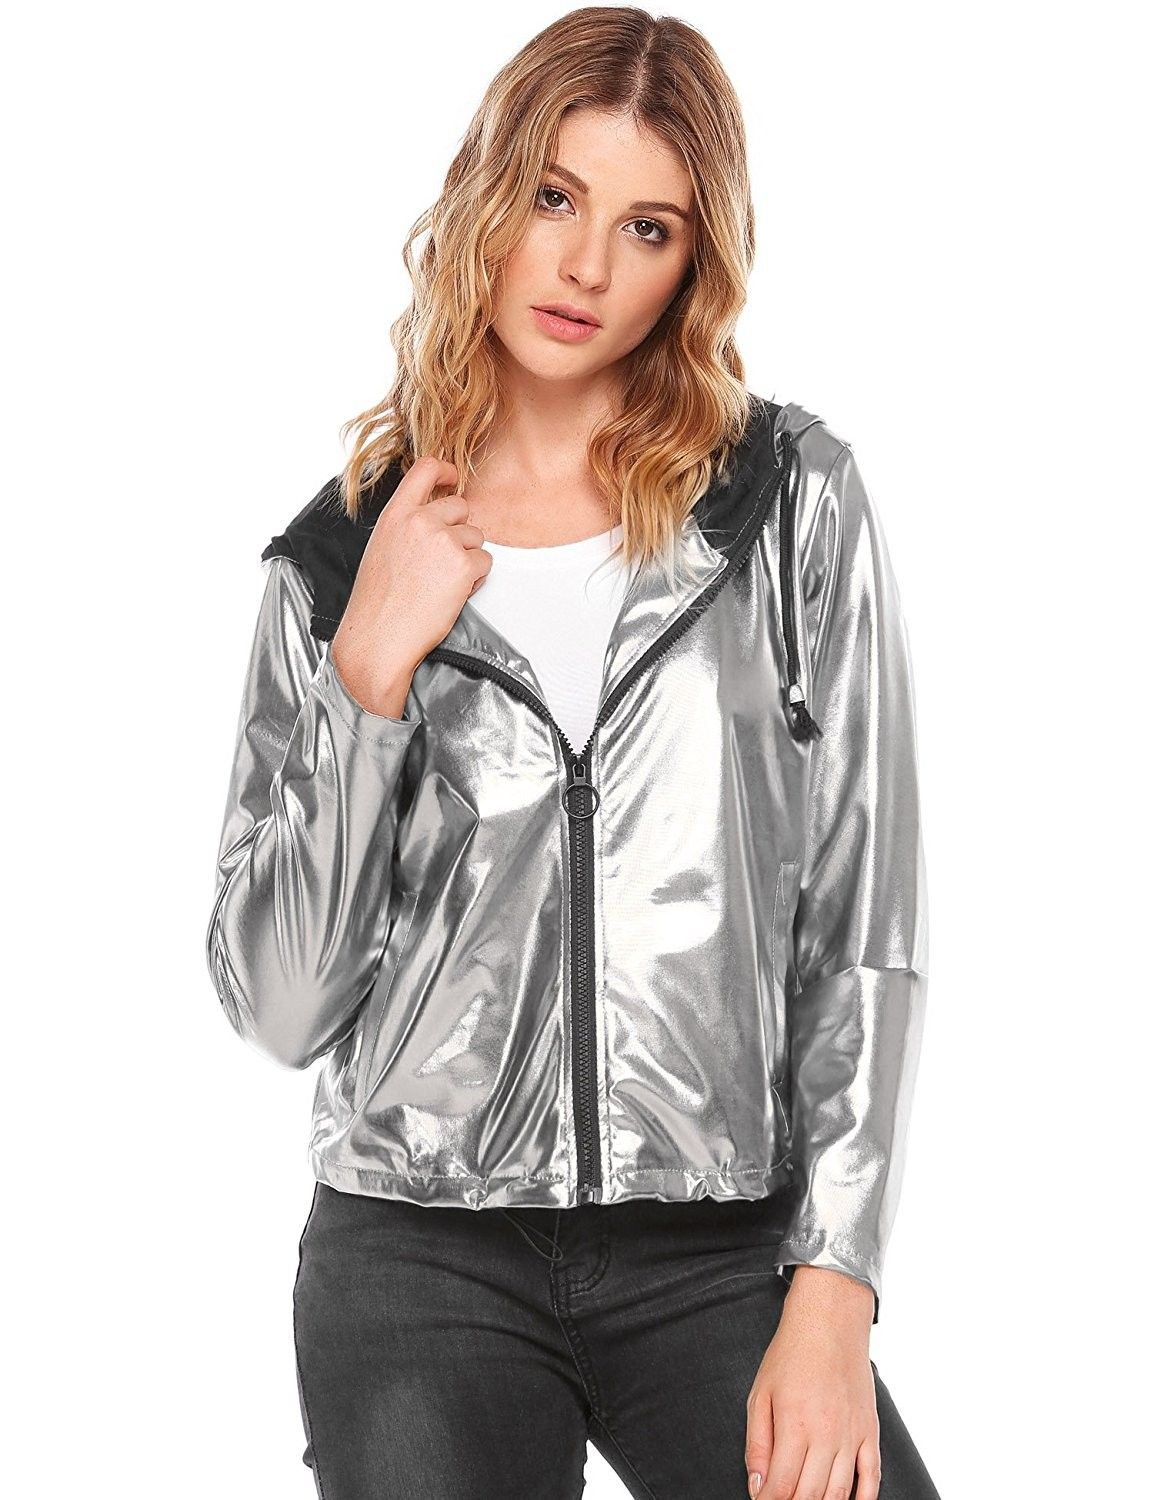 Women's Cropped Lightweight Sequin Leather Motorcycle Coat